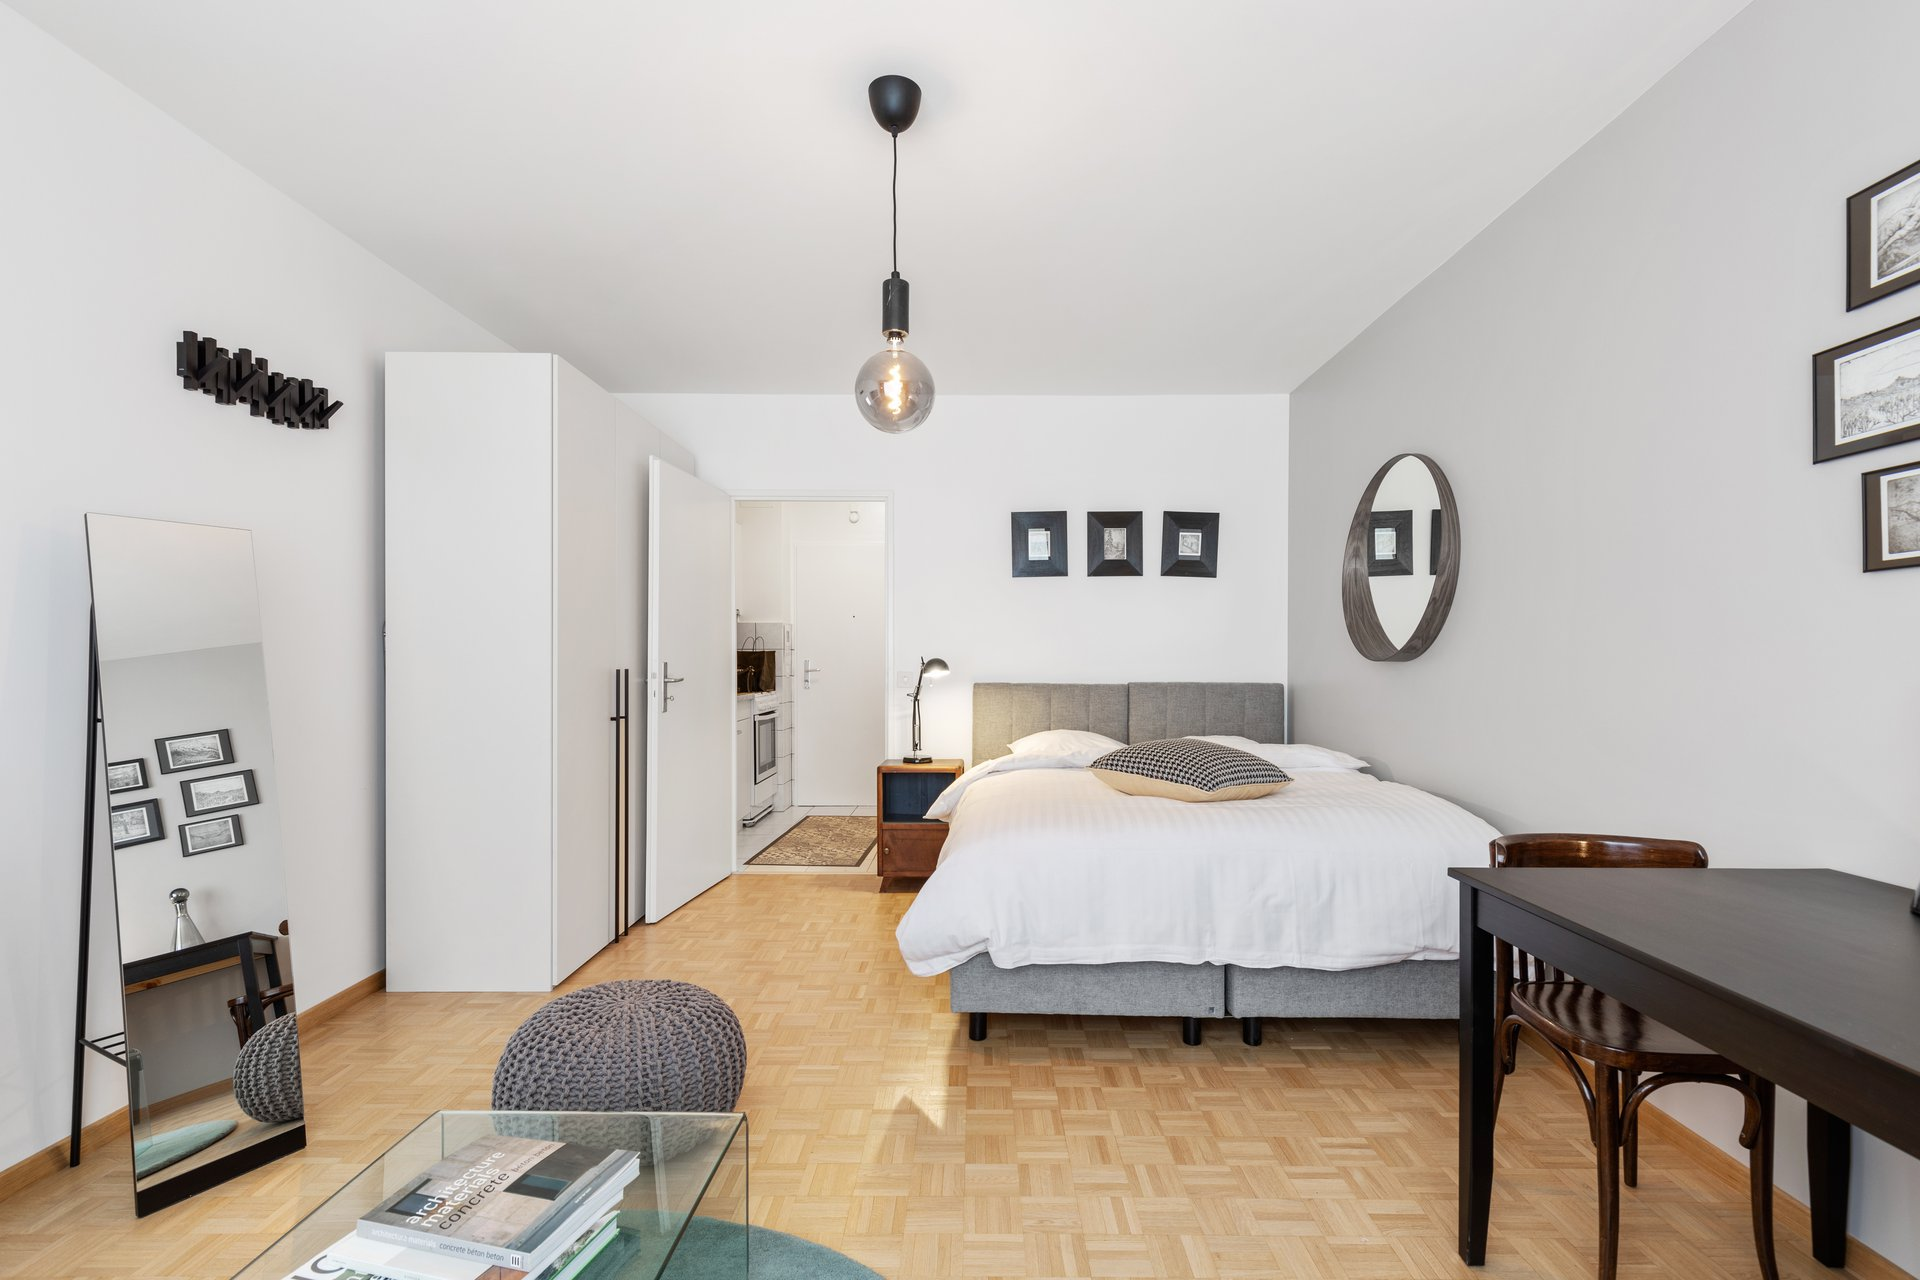 Nice apartment in Champel close to the park Bertrand. The apartment has been fully refurbished.